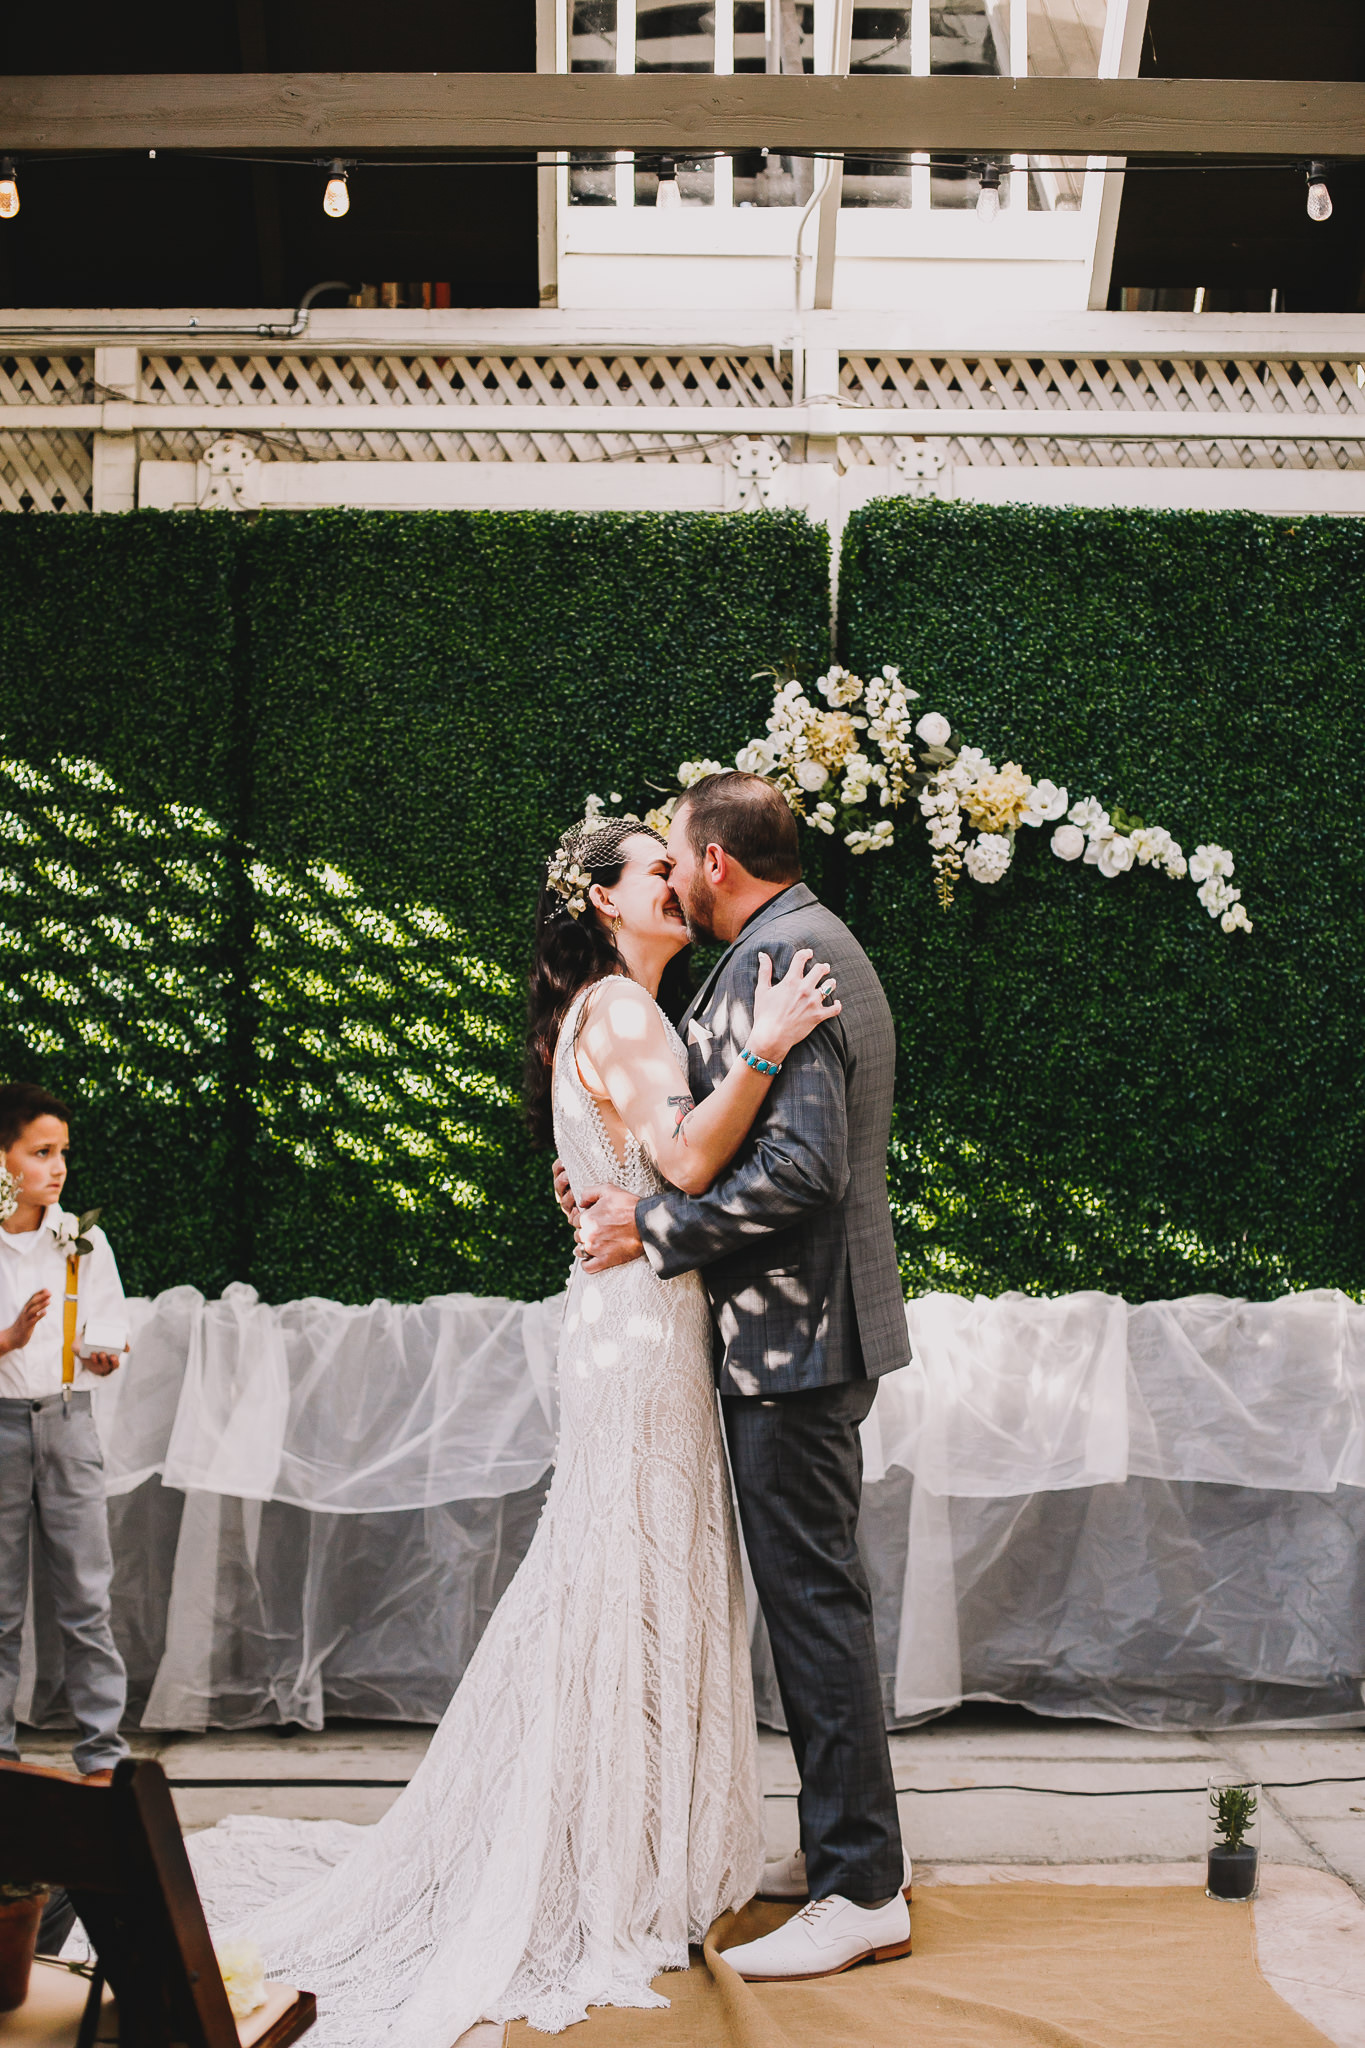 Archer Inspired Photography Sara and Aaron Winchester Mystery House NorCal San Jose California Wedding Photographer-168.jpg